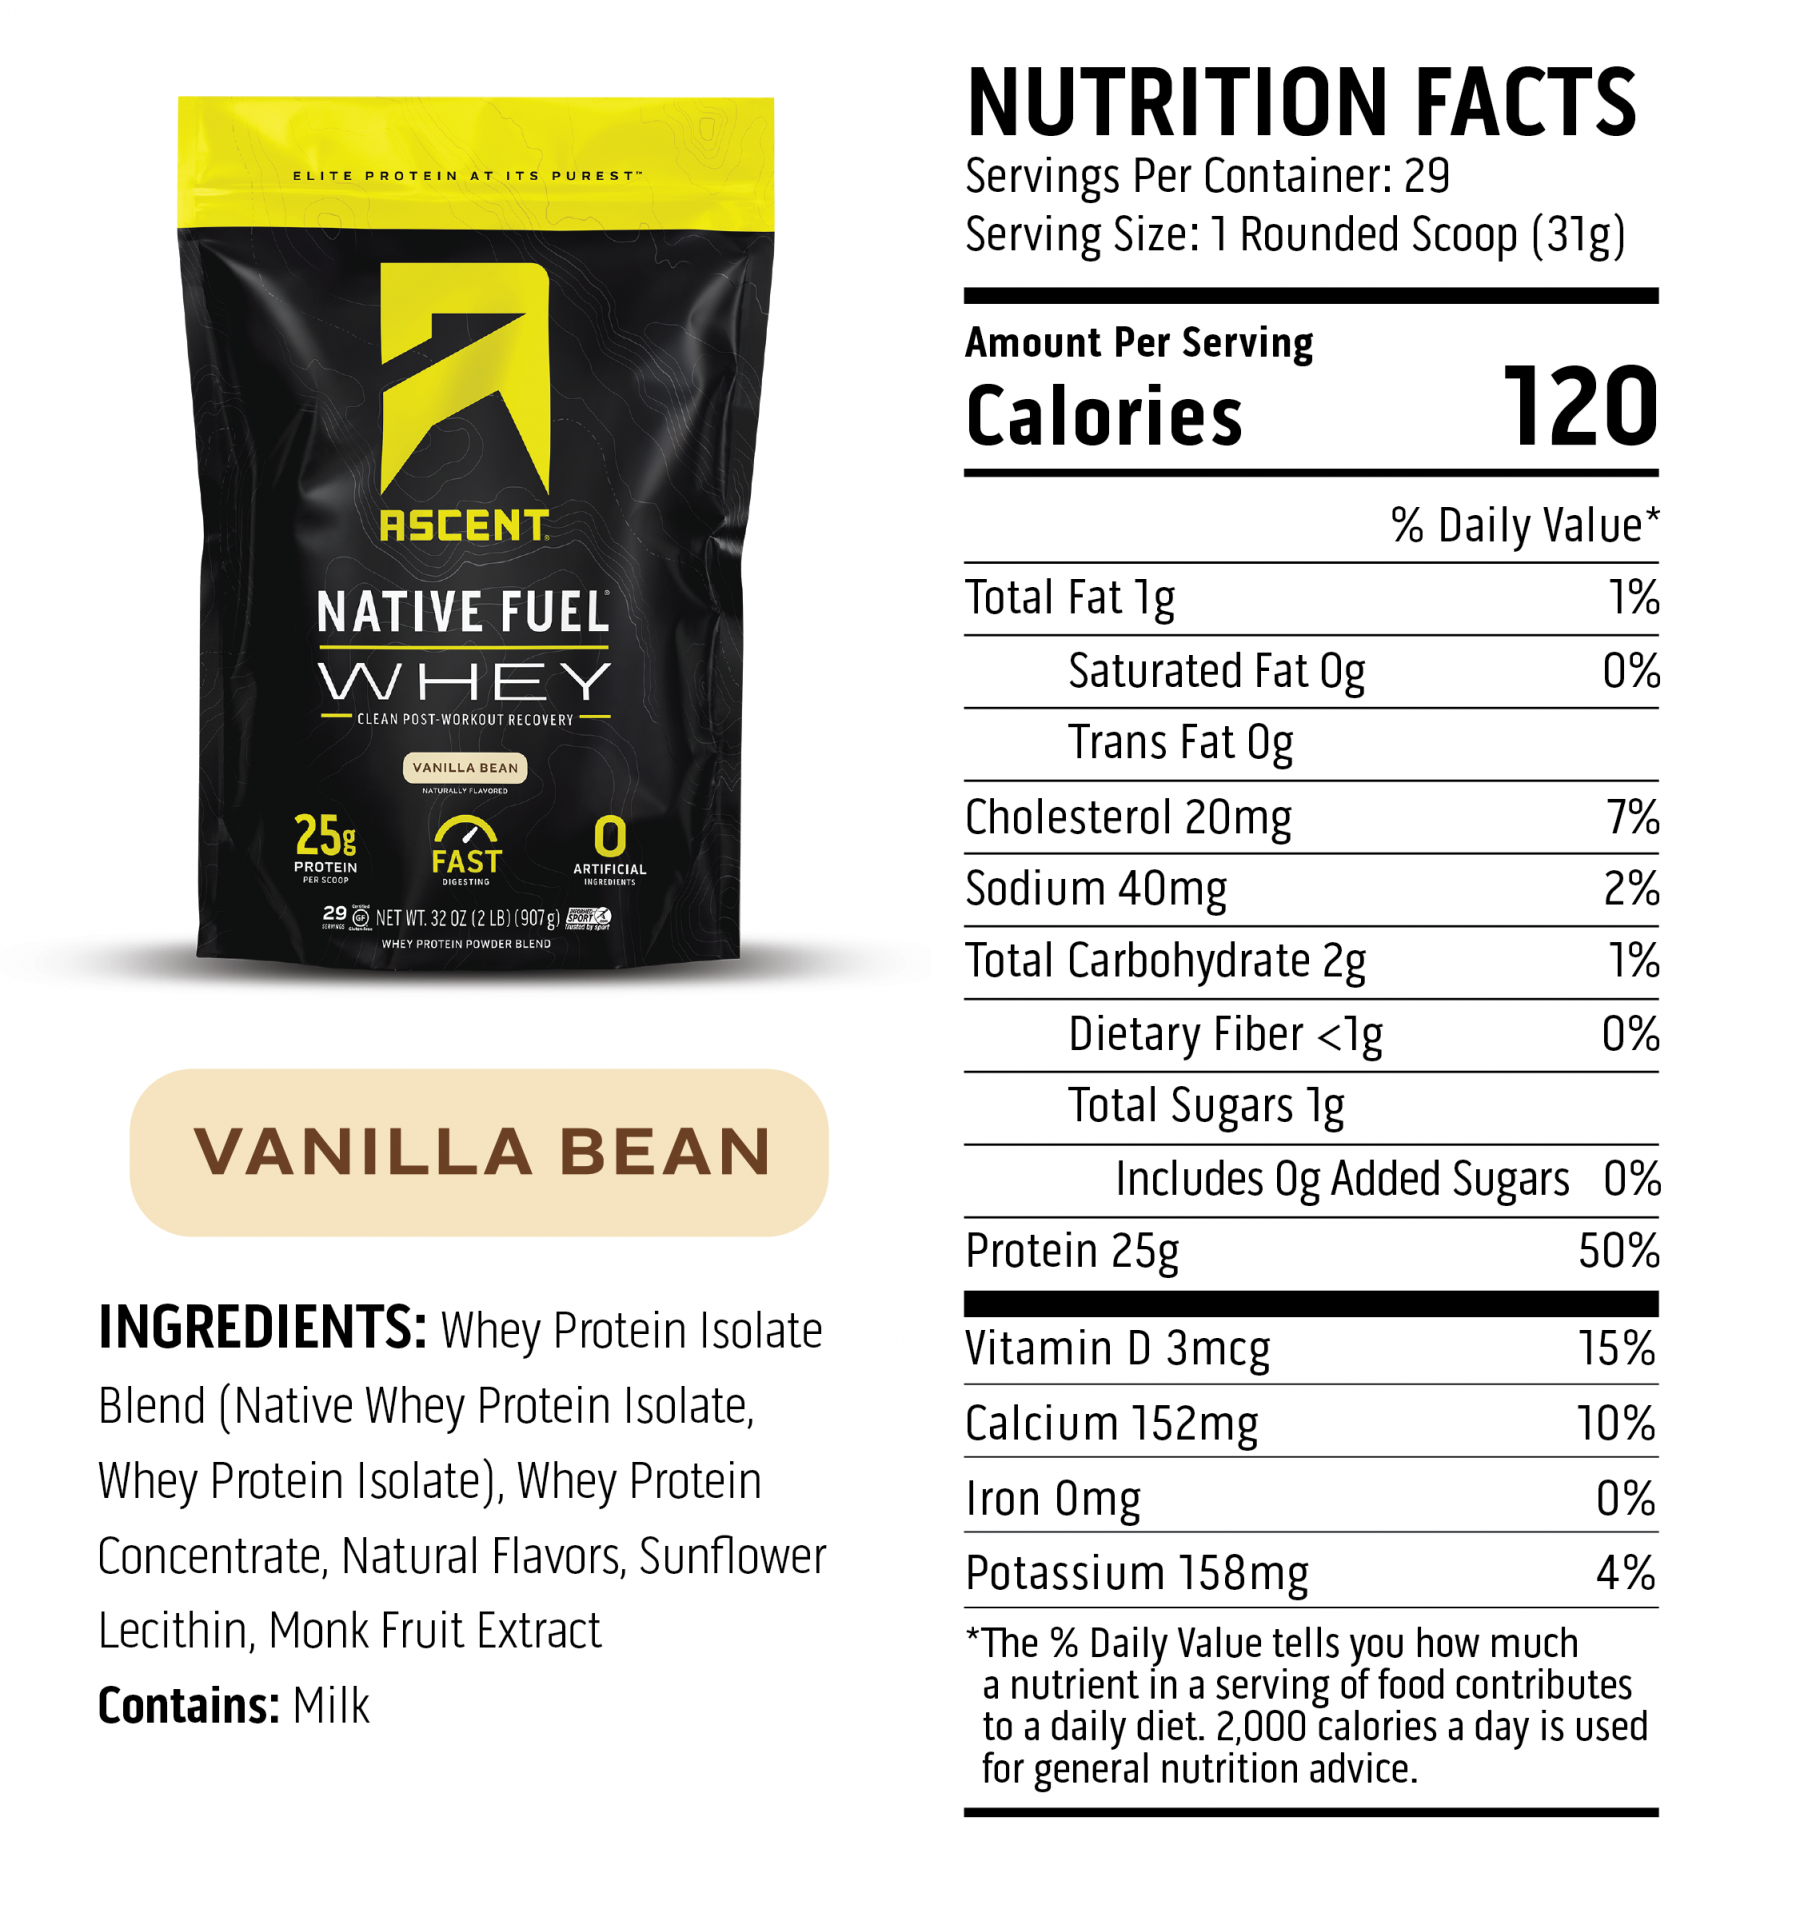 ascent_vanilla_nfp_whey_2lb_withbag_m1.png